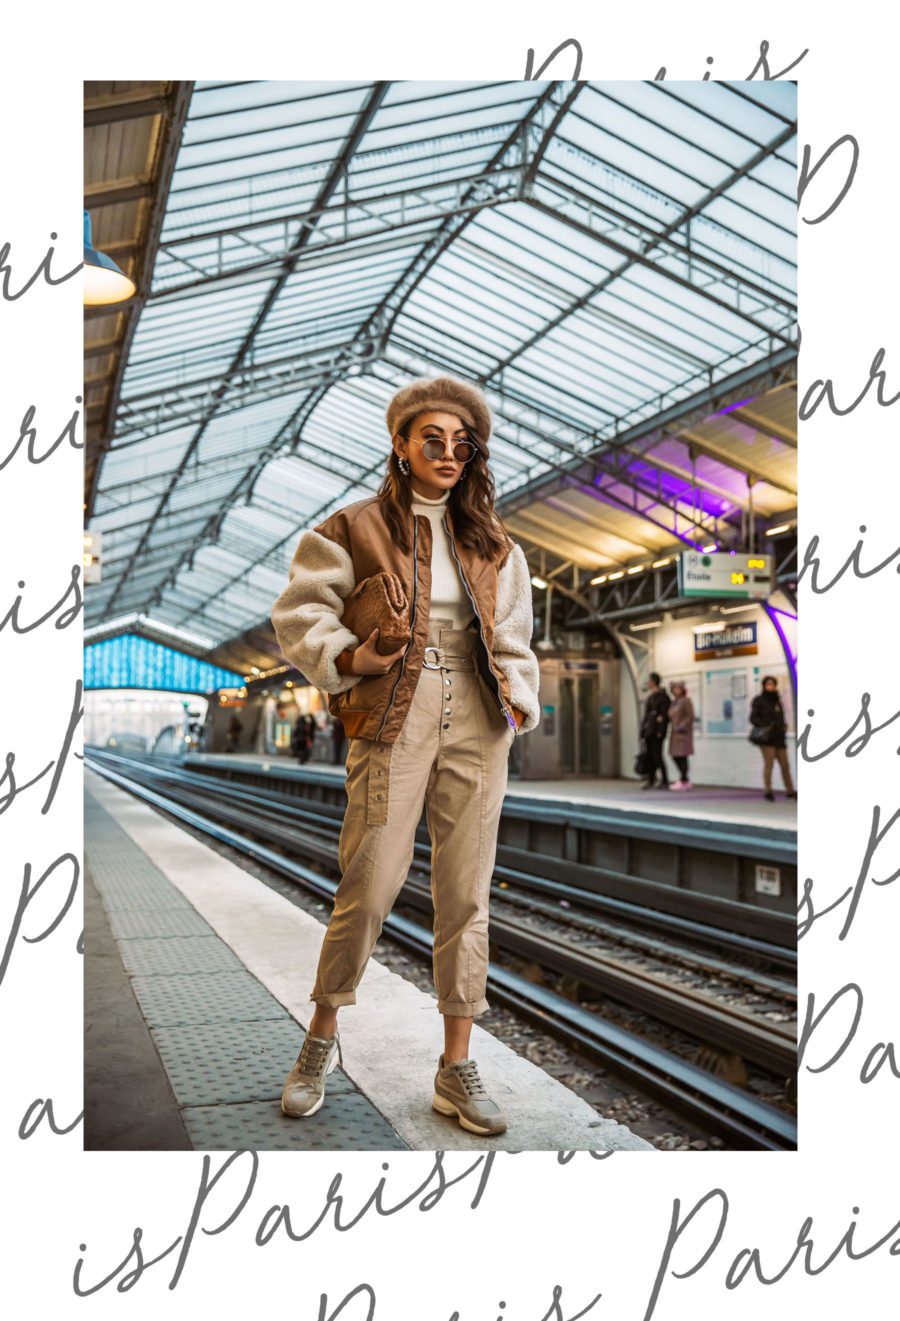 Simple Ways to Make Your Blog Stand Out - Useful Blogging Tips for New Bloggers, New York Fashion Blogger, Chunky Sneakers Trend, Paris Train Station, PFW Street Style, Creative Paris Photos, Jessica Wang street style, Winter outfits // Notjessfashion.com